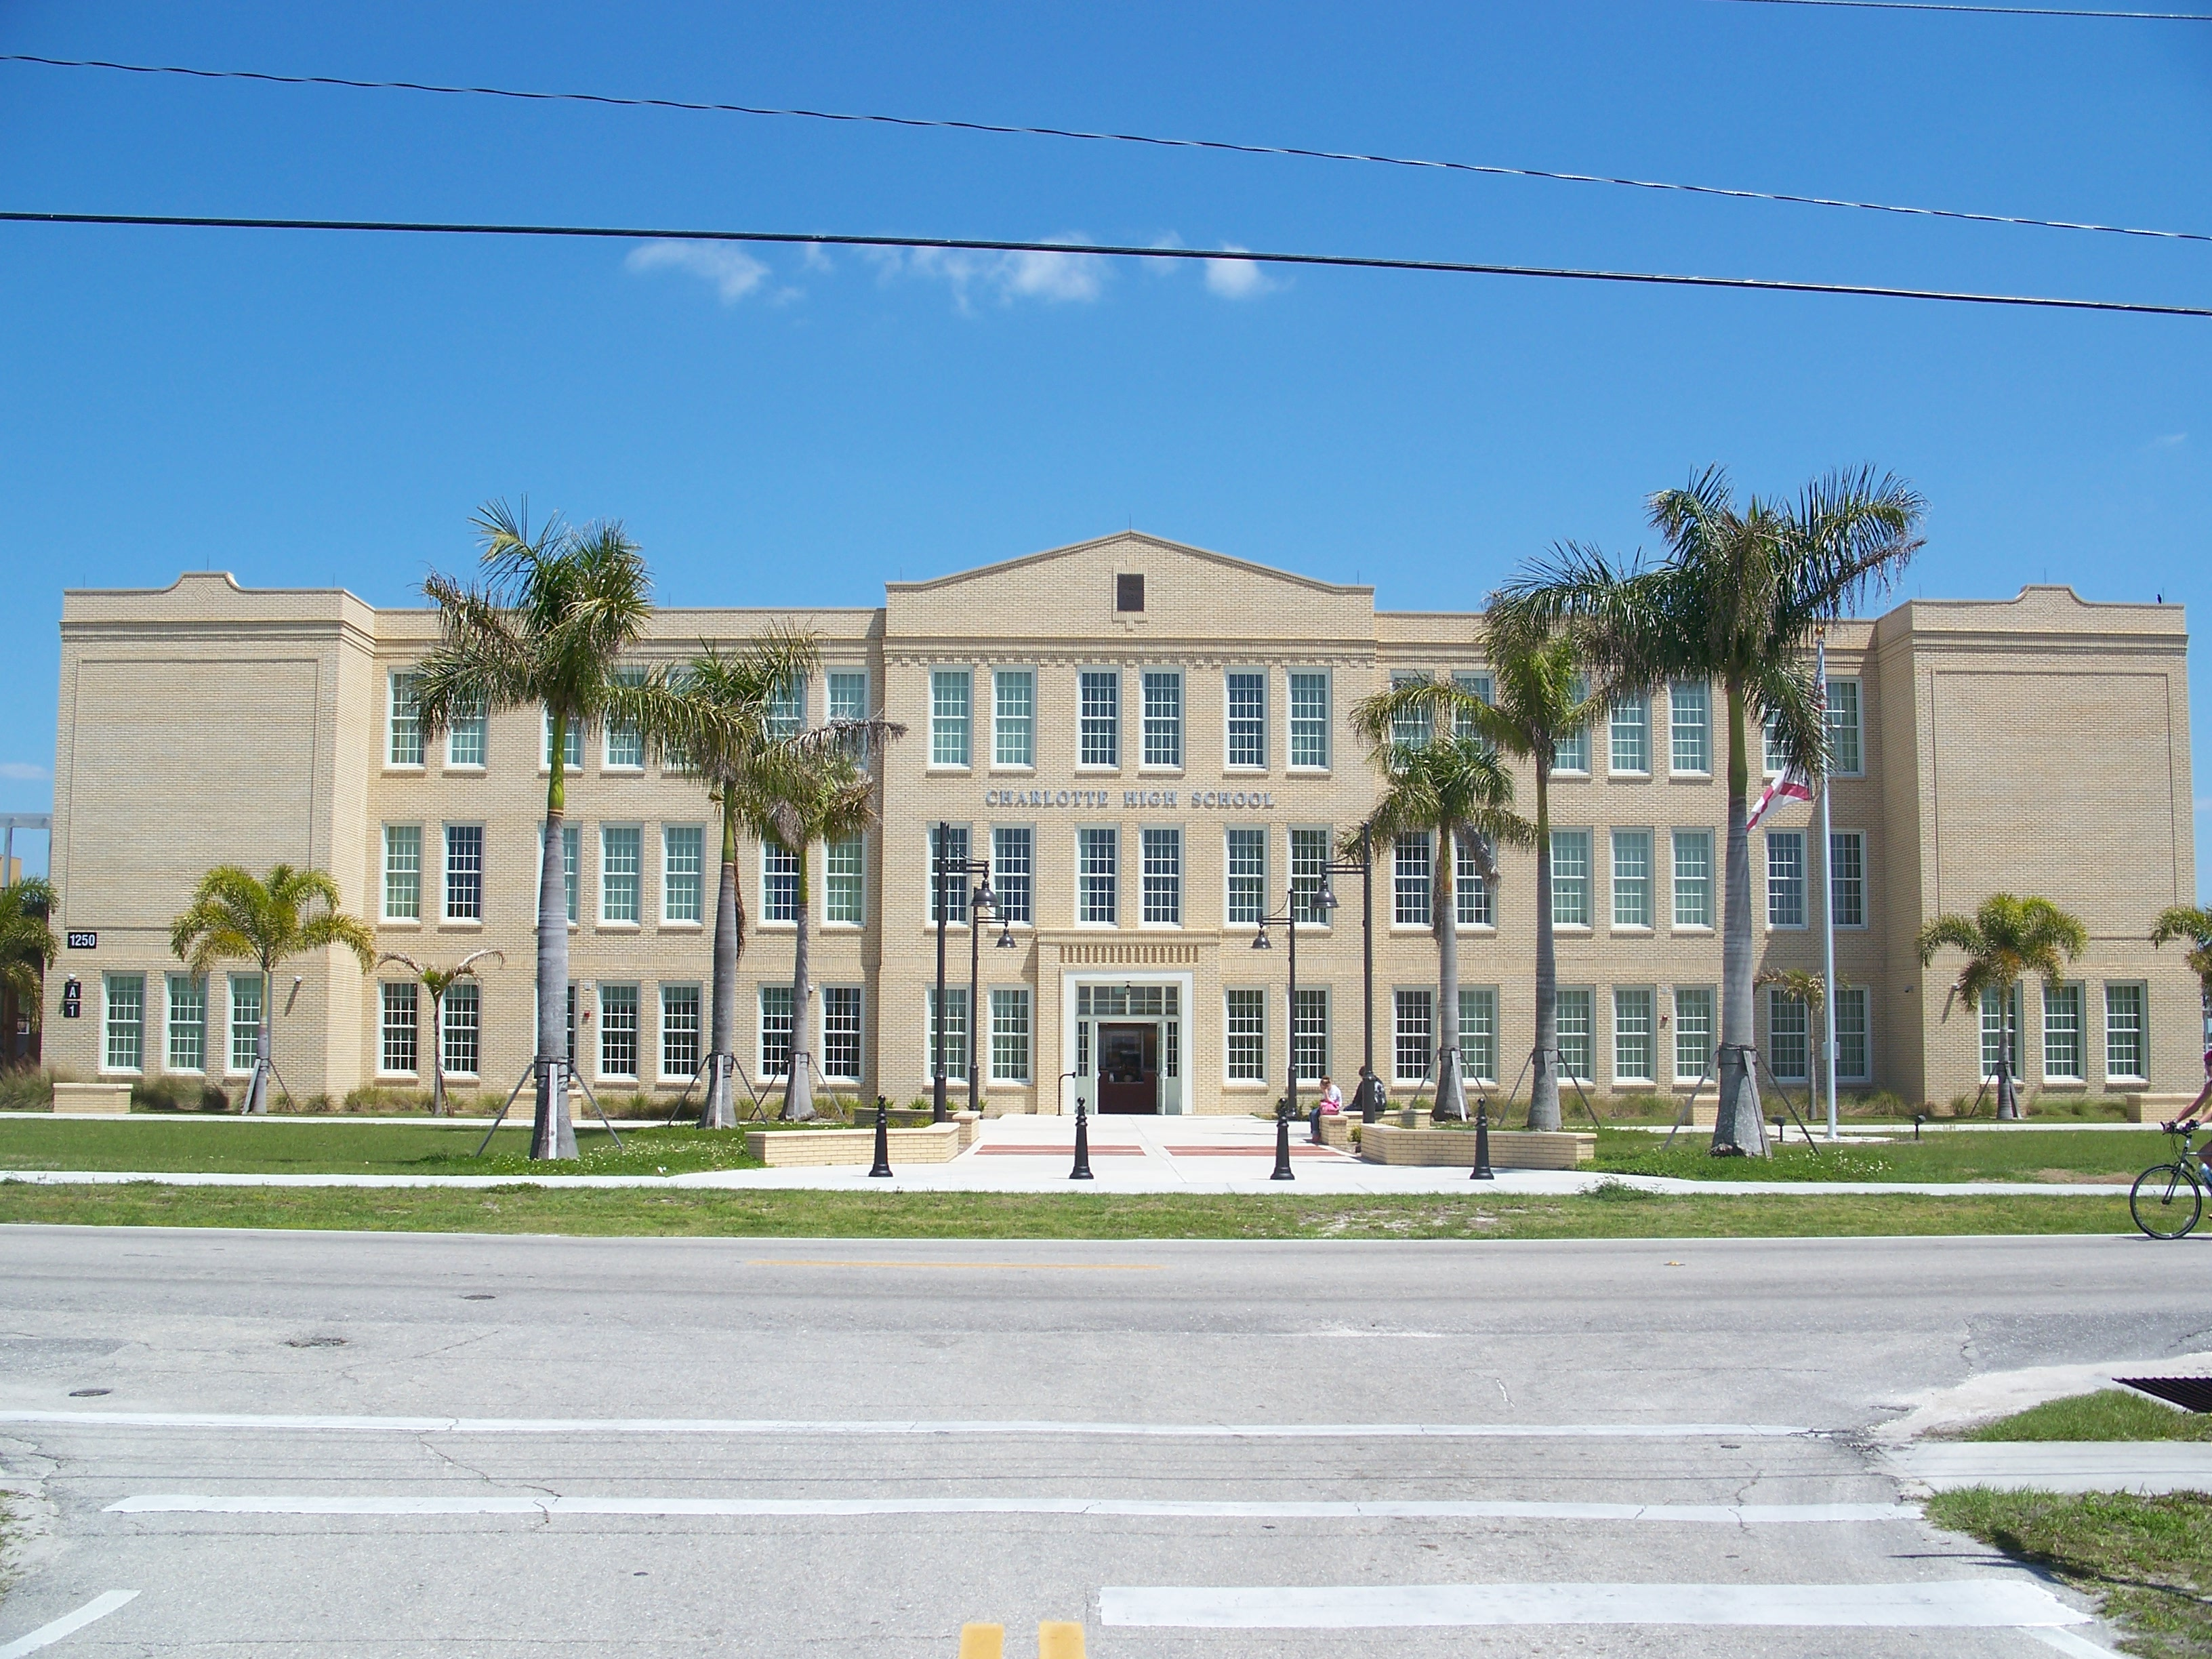 Florida Learners Permit >> The 30 Best High School Mascots in Florida - Aceable